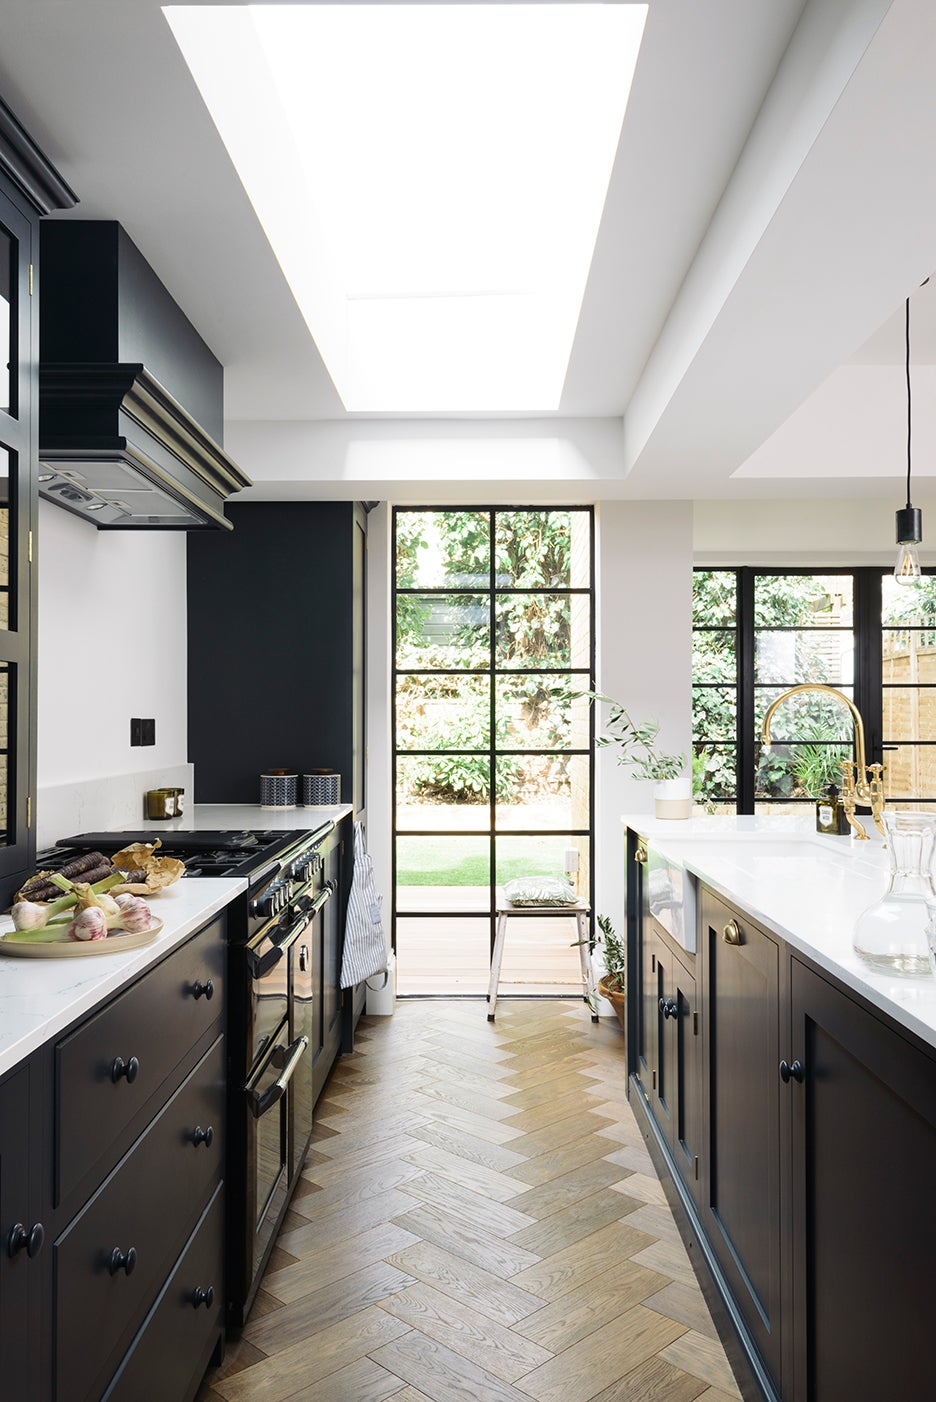 7 Top Paint Brands Reveal Their Best-Selling Kitchen Cabinet Colors